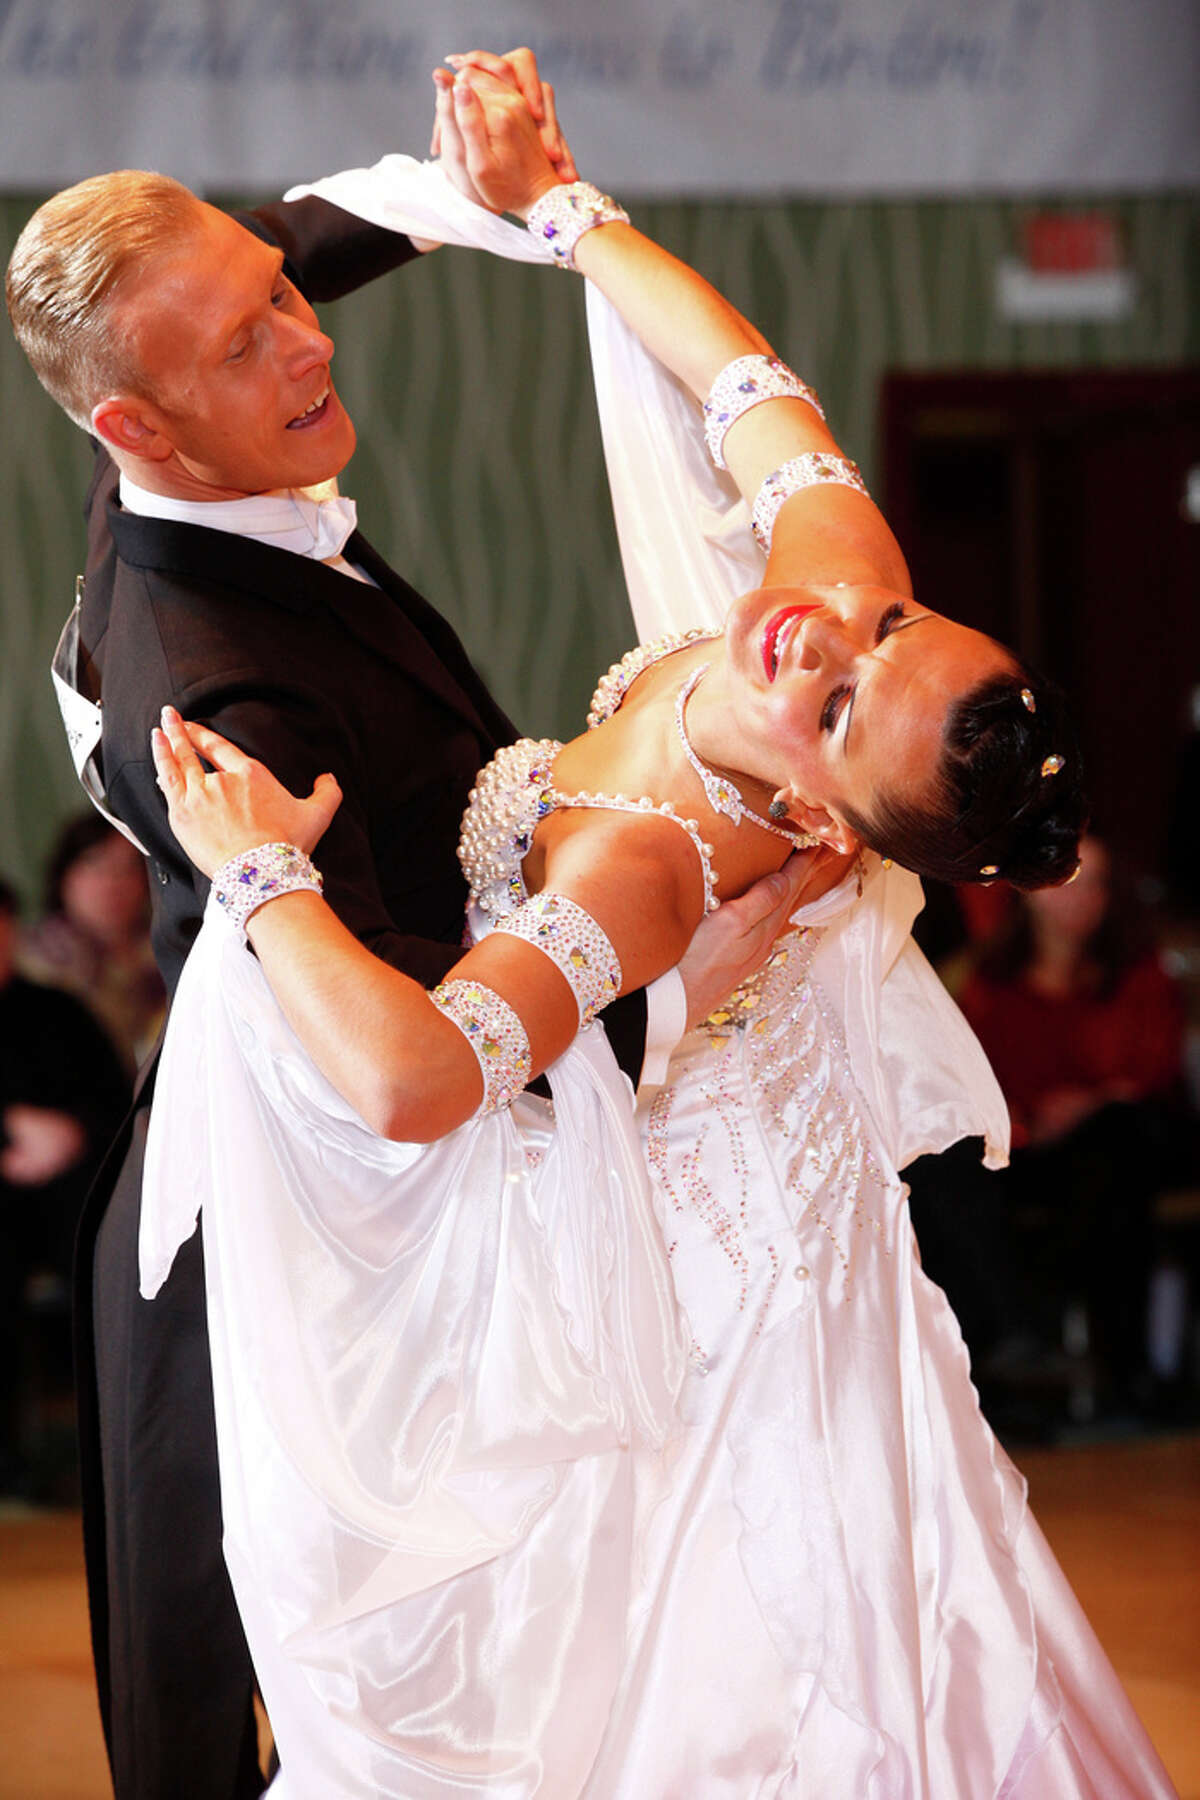 Morten Schnedler and Anna Trukhan, the professional ballroom dance champions of Denmark, will perform at Holy Trinity Greek Church Community Center, 4070 Park Ave., Bridgeport, Conn., on Saturday, July 28, 2012, during a salute to Fred Astaire. The $17 admission fee includes dancing, a dance lesson and the show. To reserve a spot, call 203-374-7308.